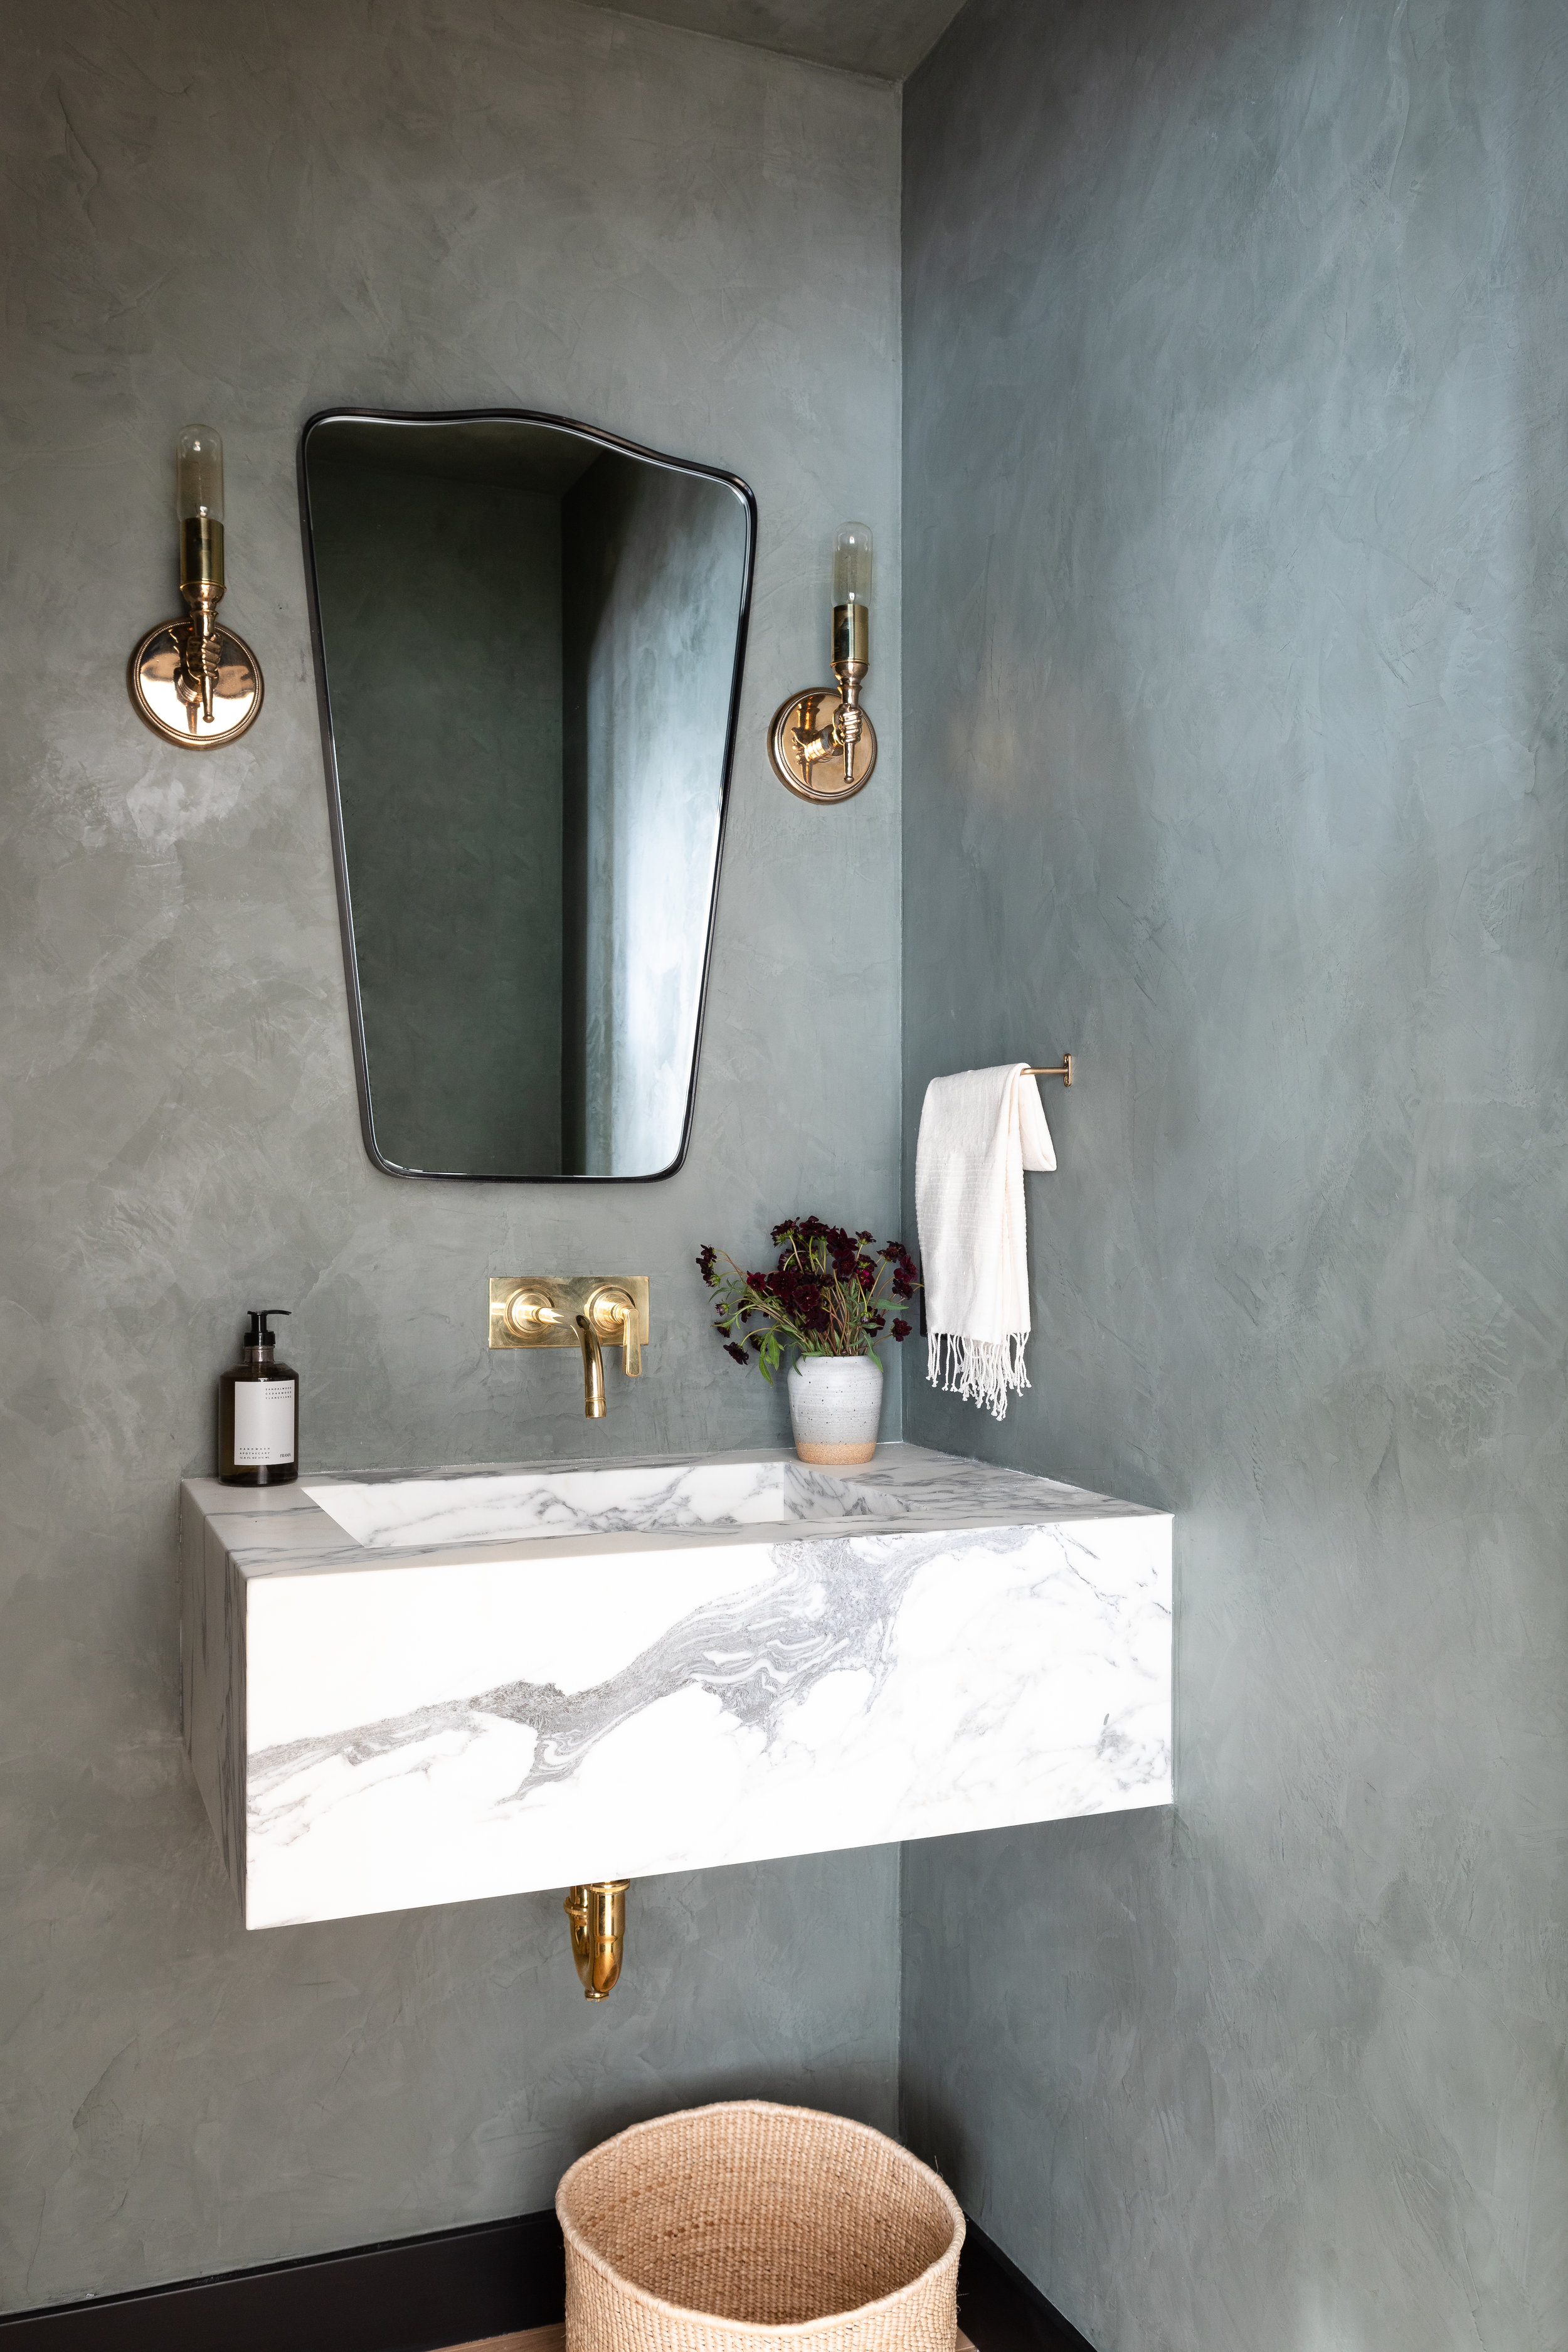 Amber-Interiors-Client-Greater-Than-Great-Powder-Room.jpg